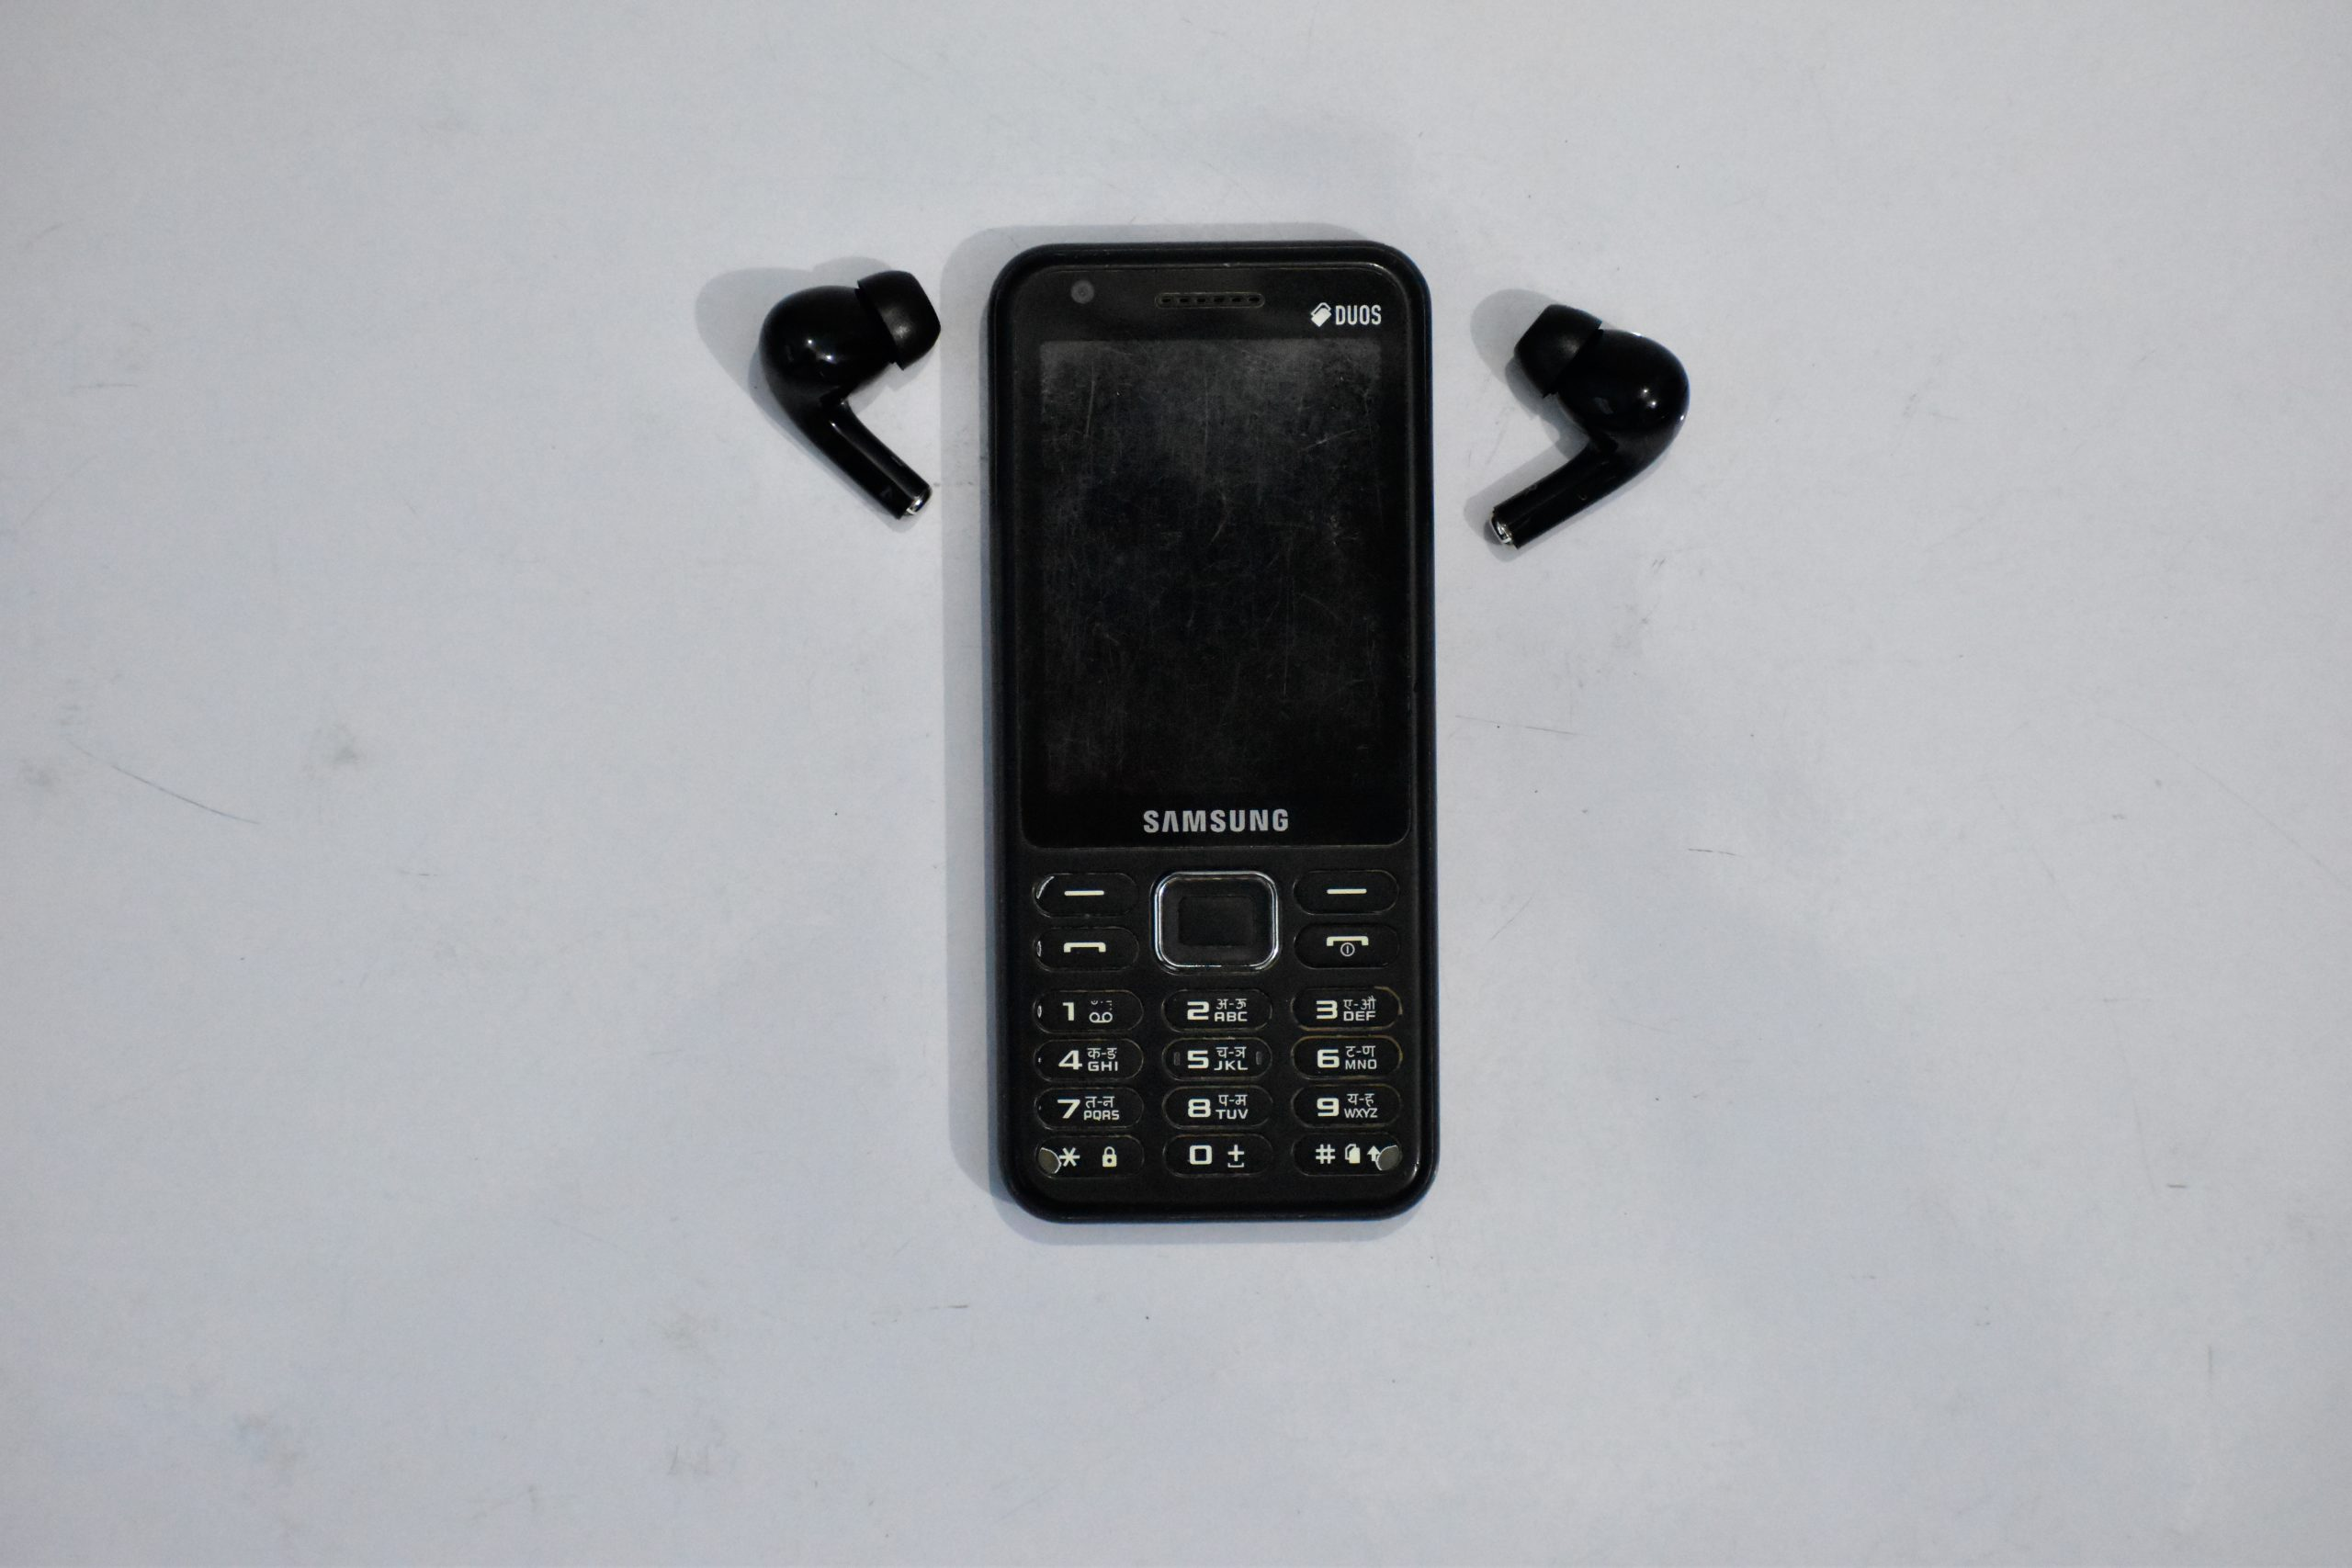 Samsung Mobile with earpods